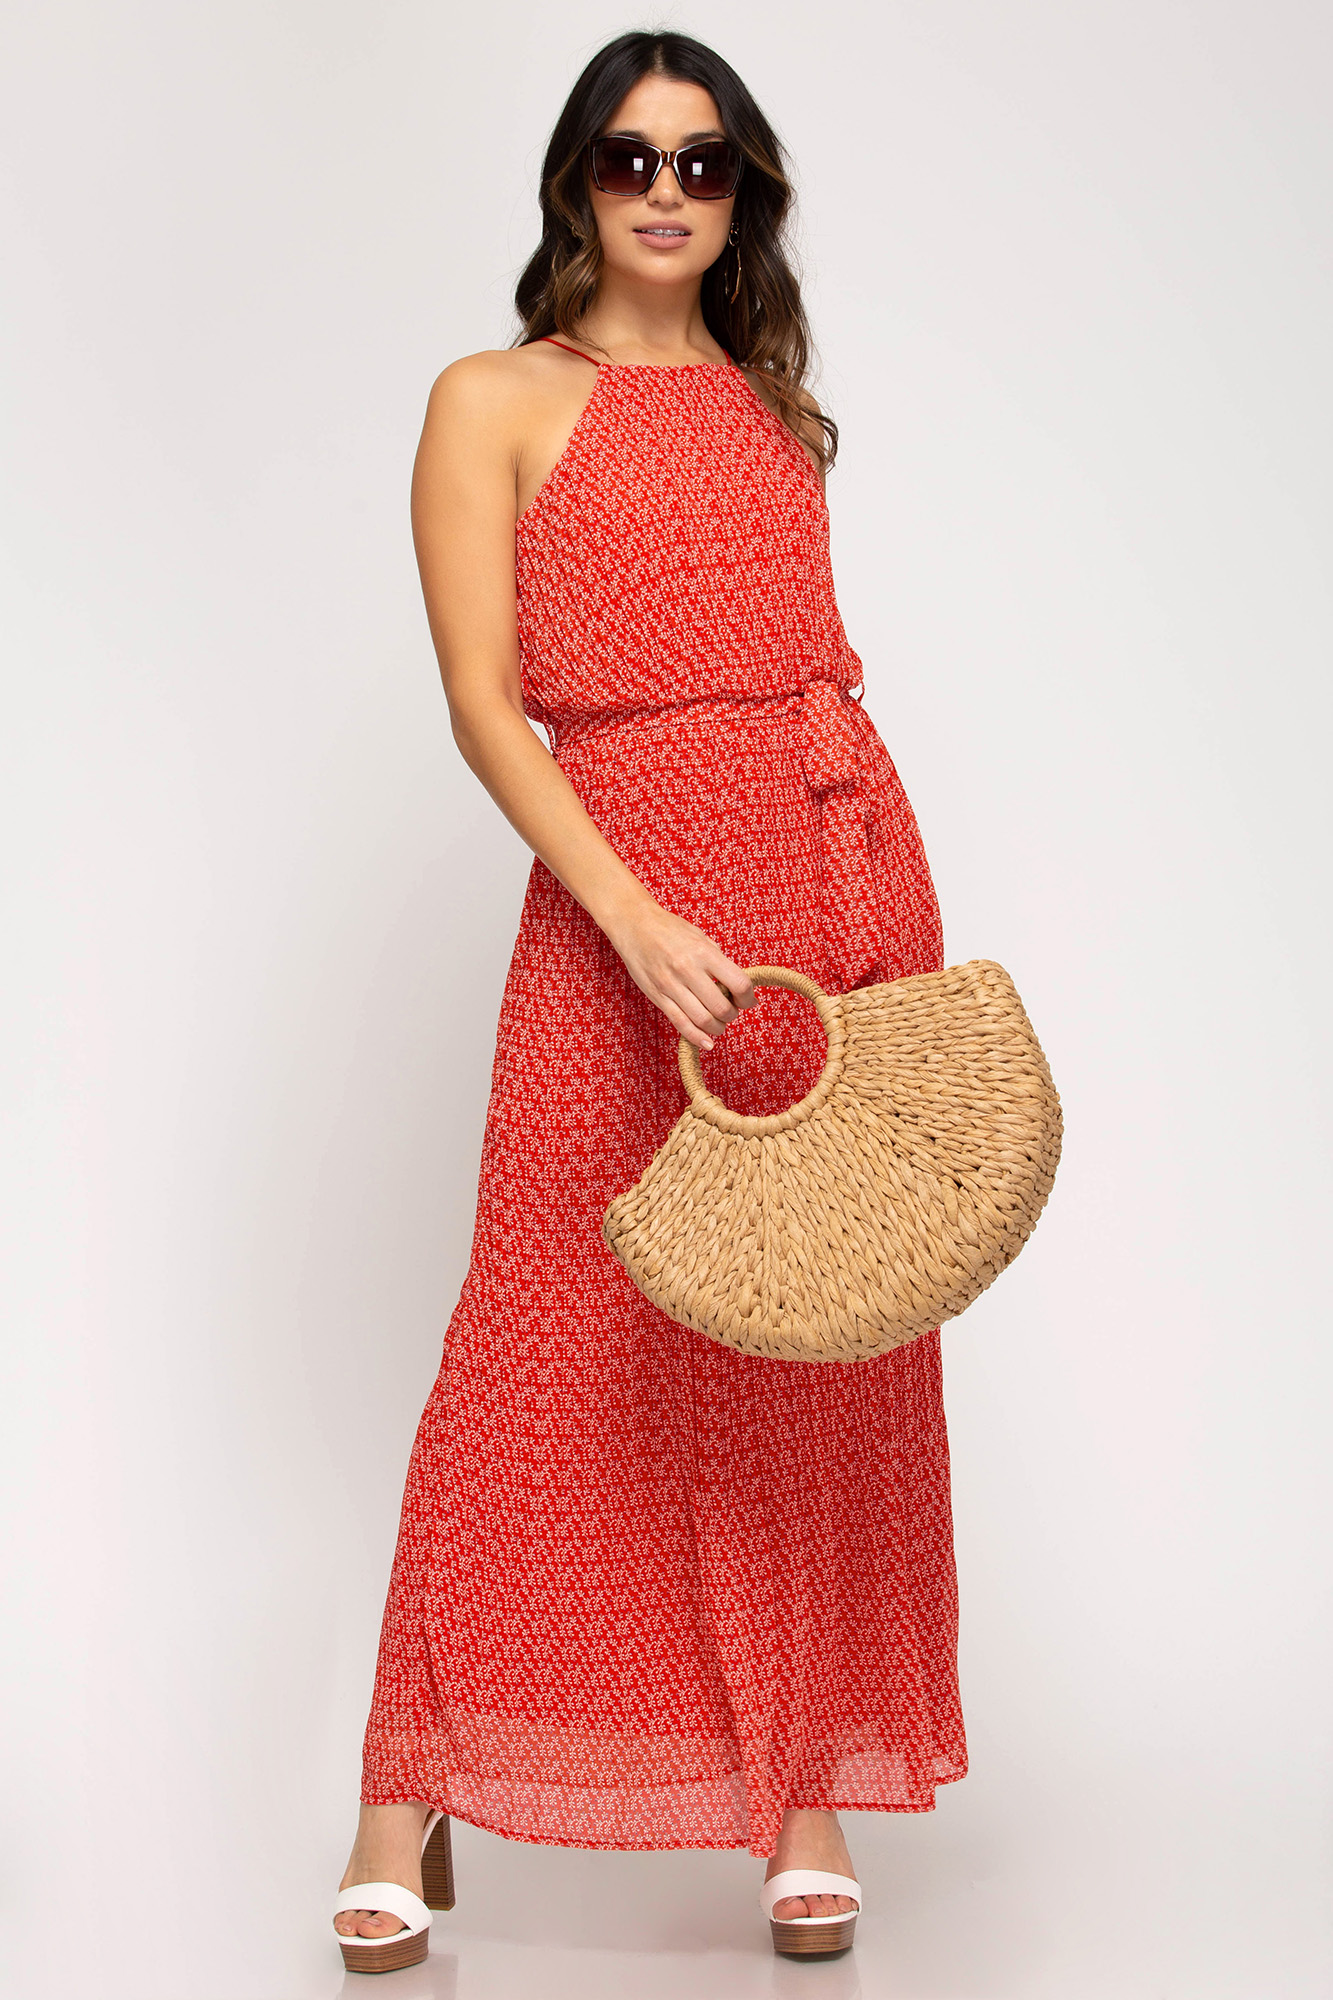 Woven Print Maxi Dress from She & Sky